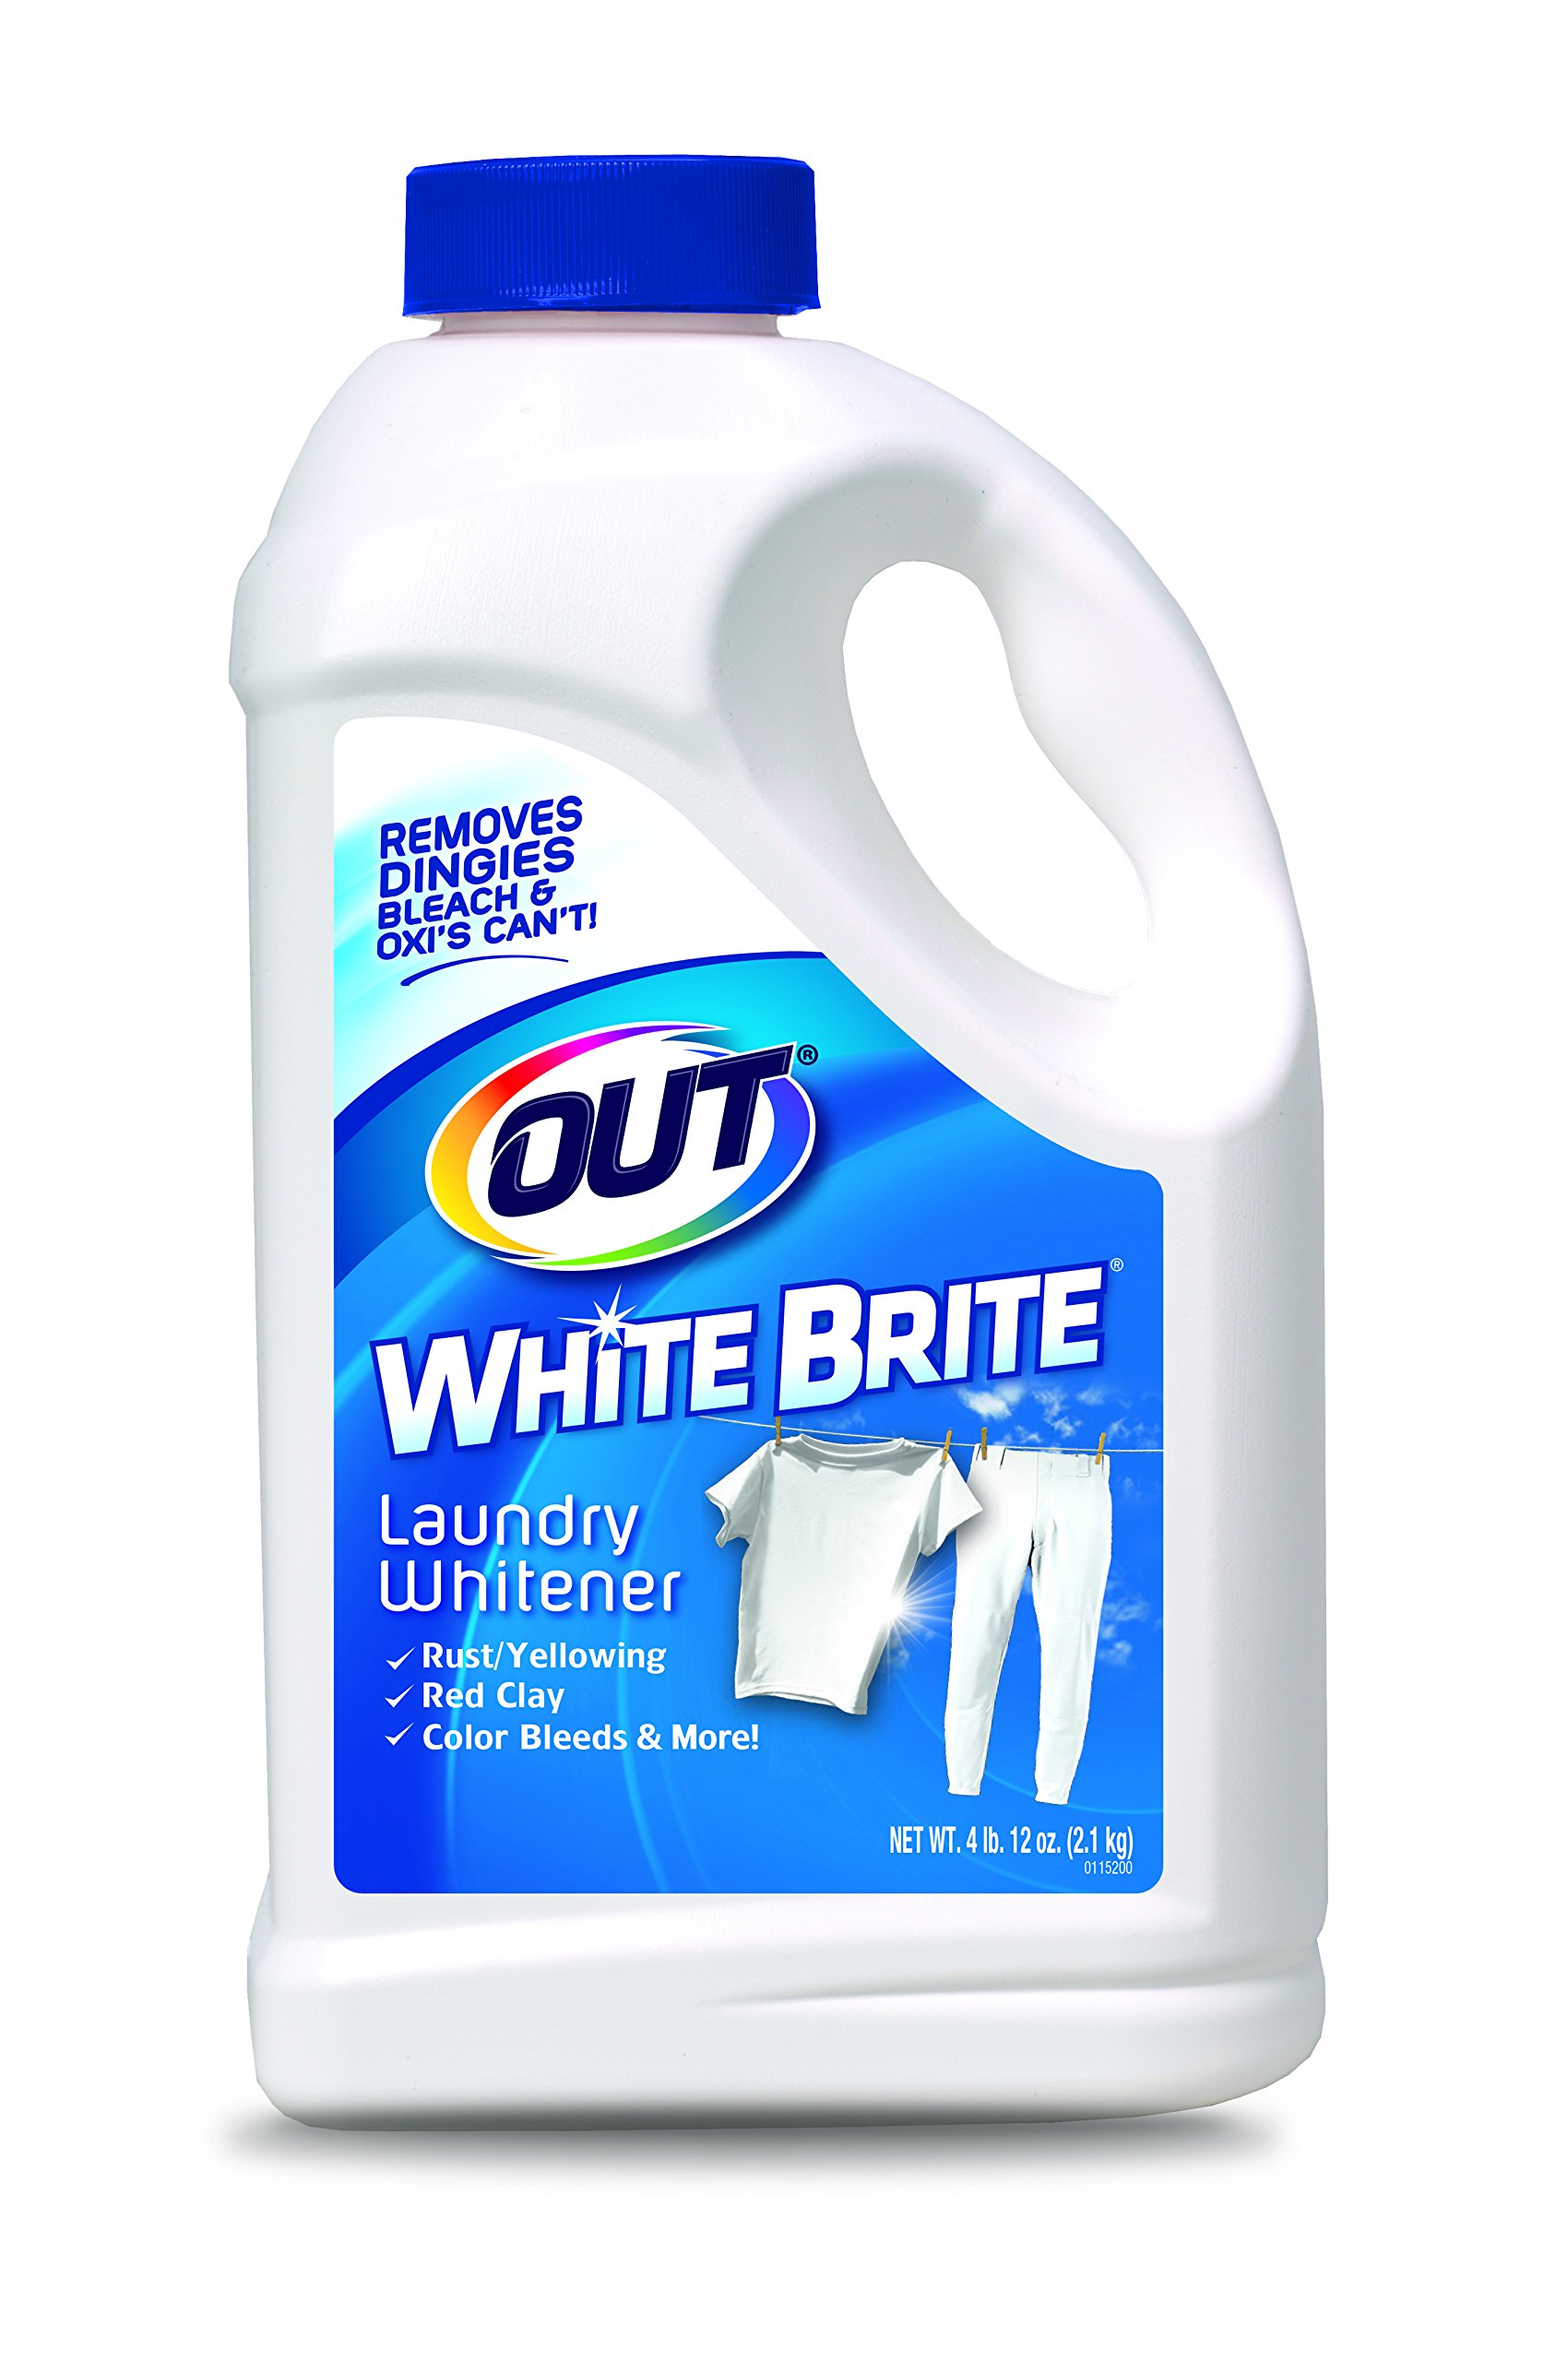 OUT White Brite Laundry Whitener, 4 lb. 12 oz. Bottle by Summit Brands